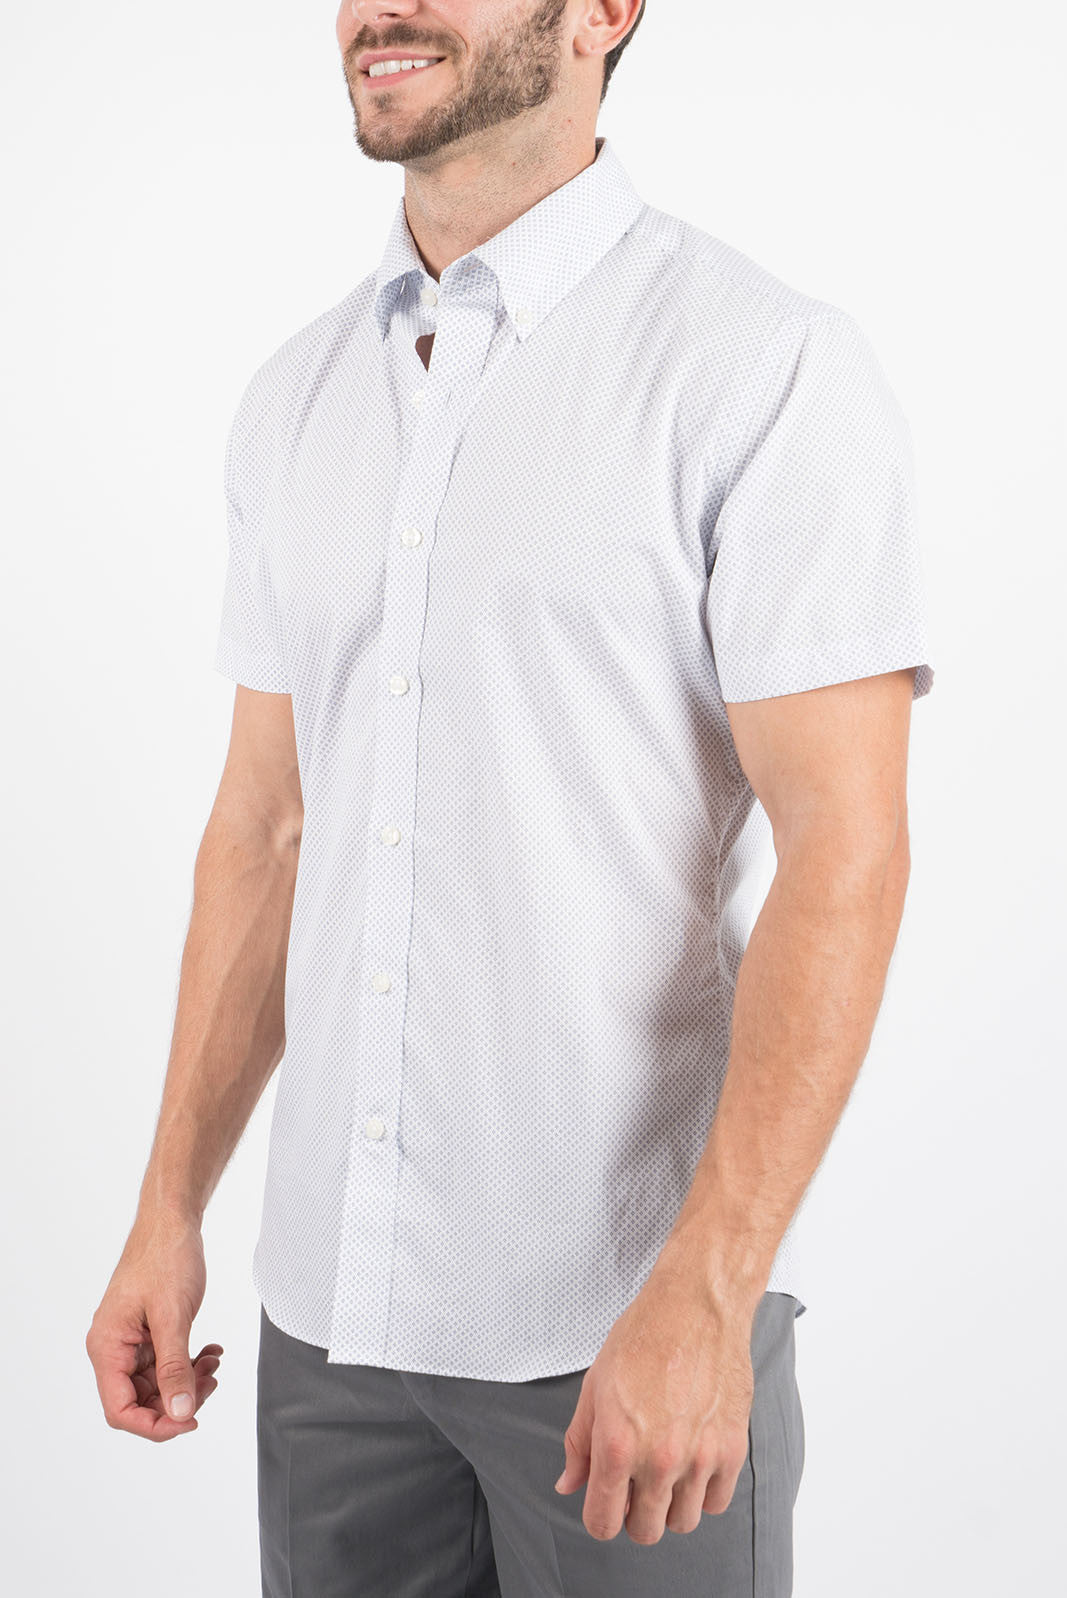 White Diamond Dot: Semi-Spread Collar, Short Sleeve